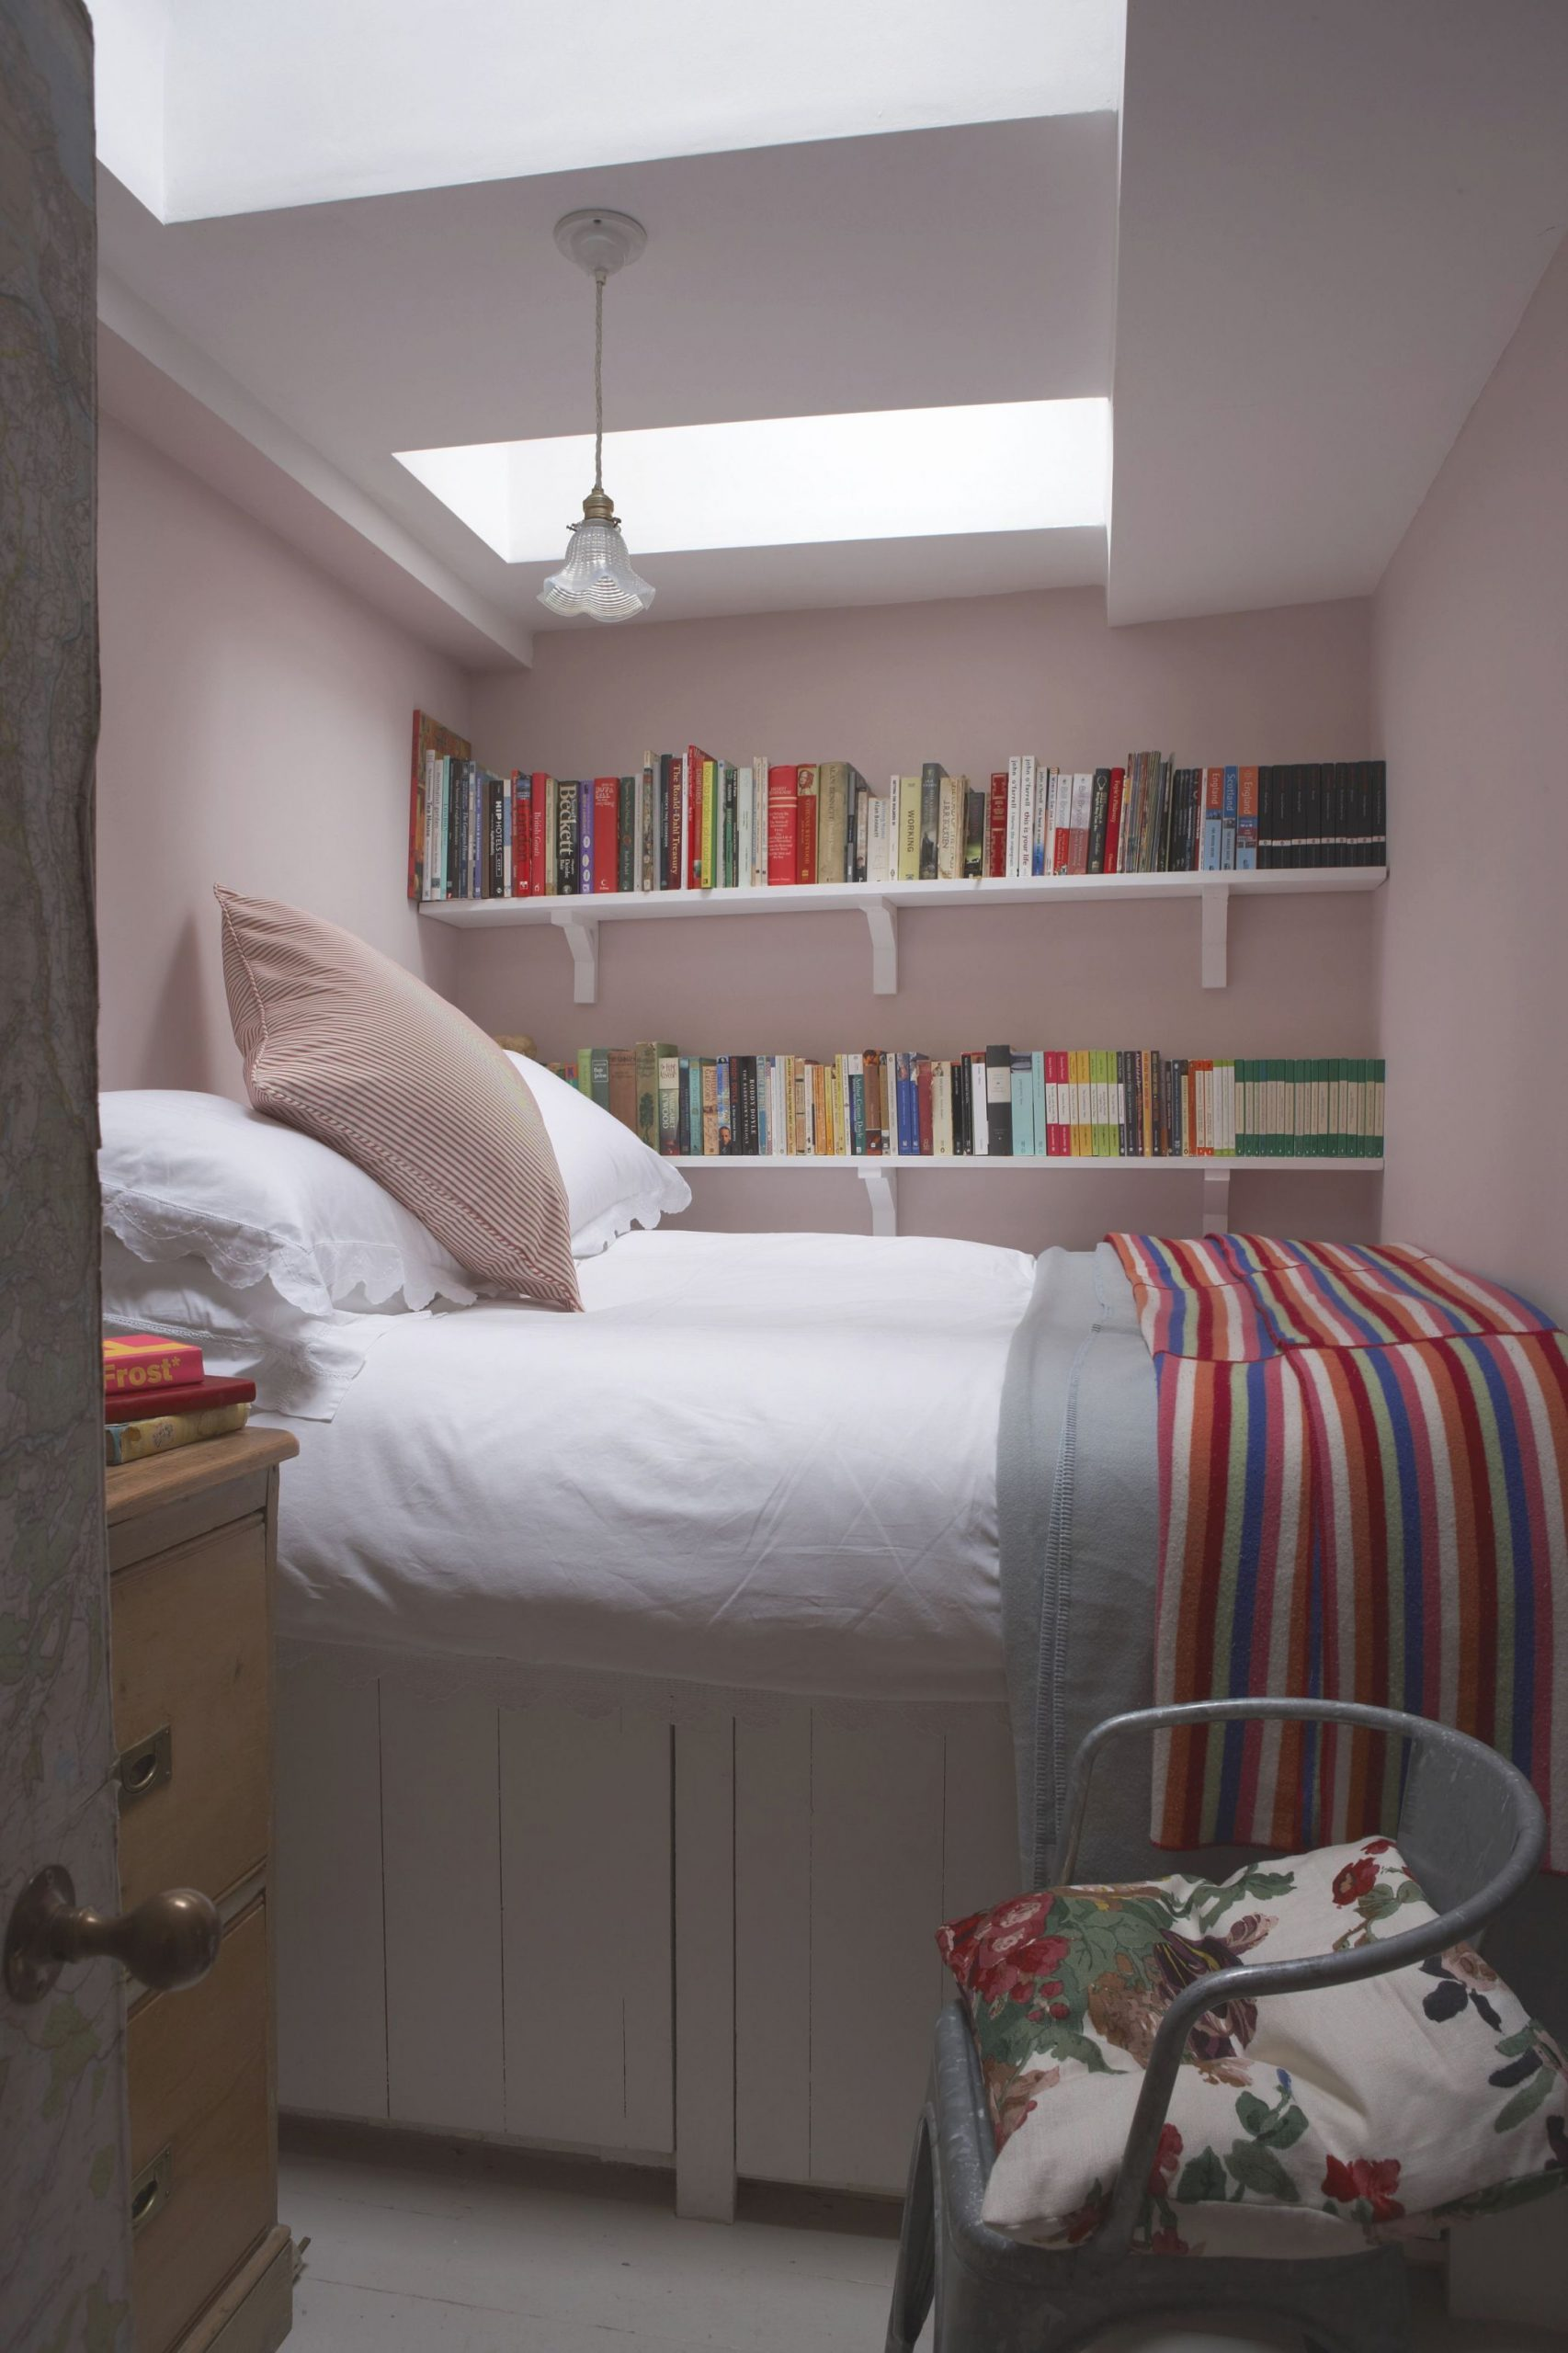 18 Small Bedroom Ideas To Fall In Love With – Small Bedroom pertaining to Elegant Small Bedroom Decorating Ideas